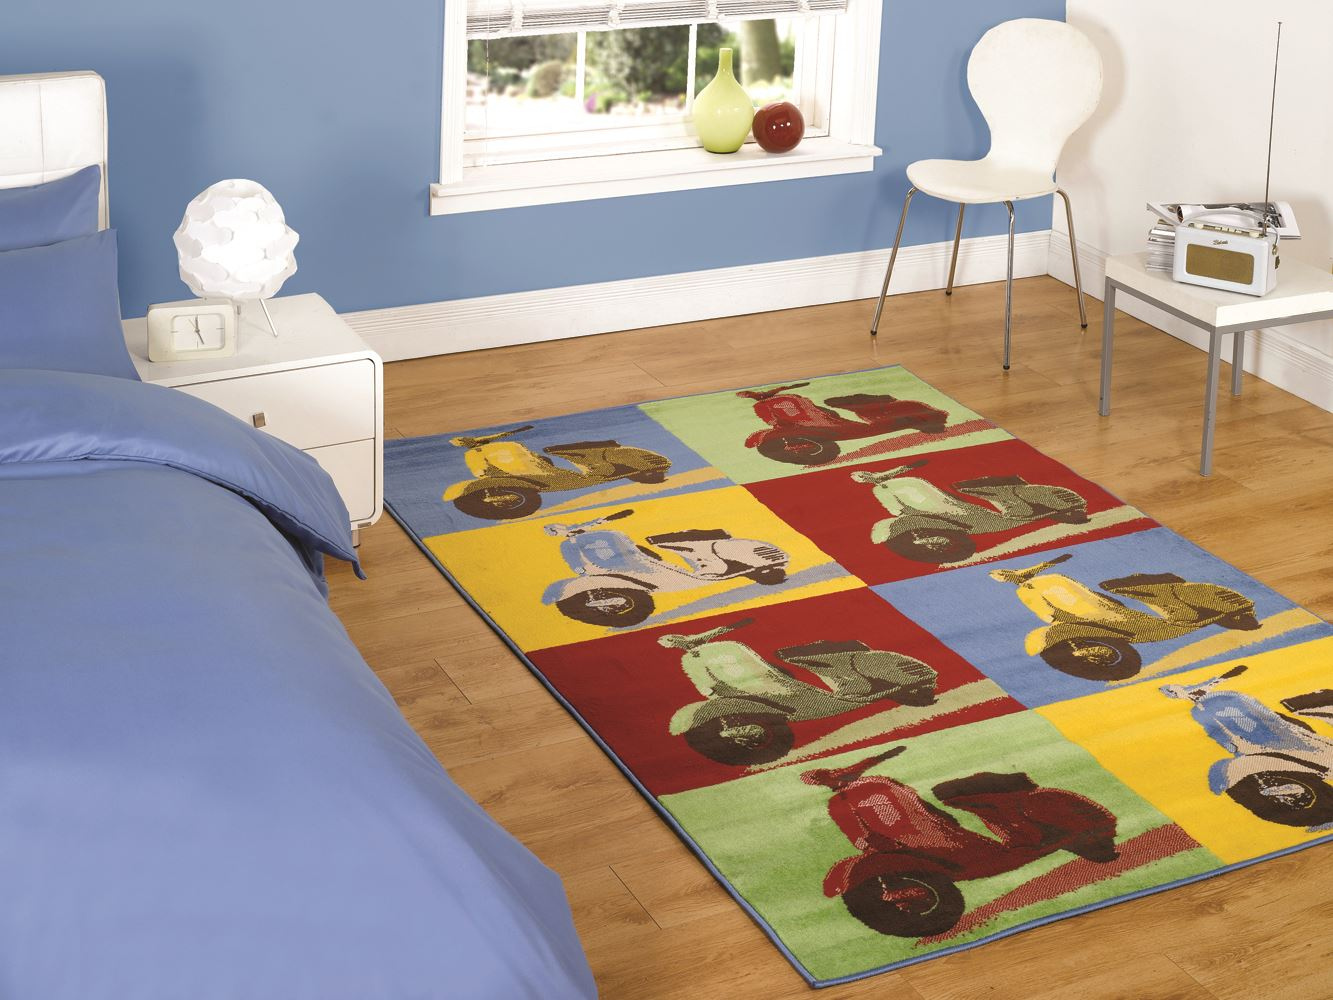 Retro Funky Rug Range By Flair Rugs Teenager Childrens Bedroom Floor Bright Big Ebay